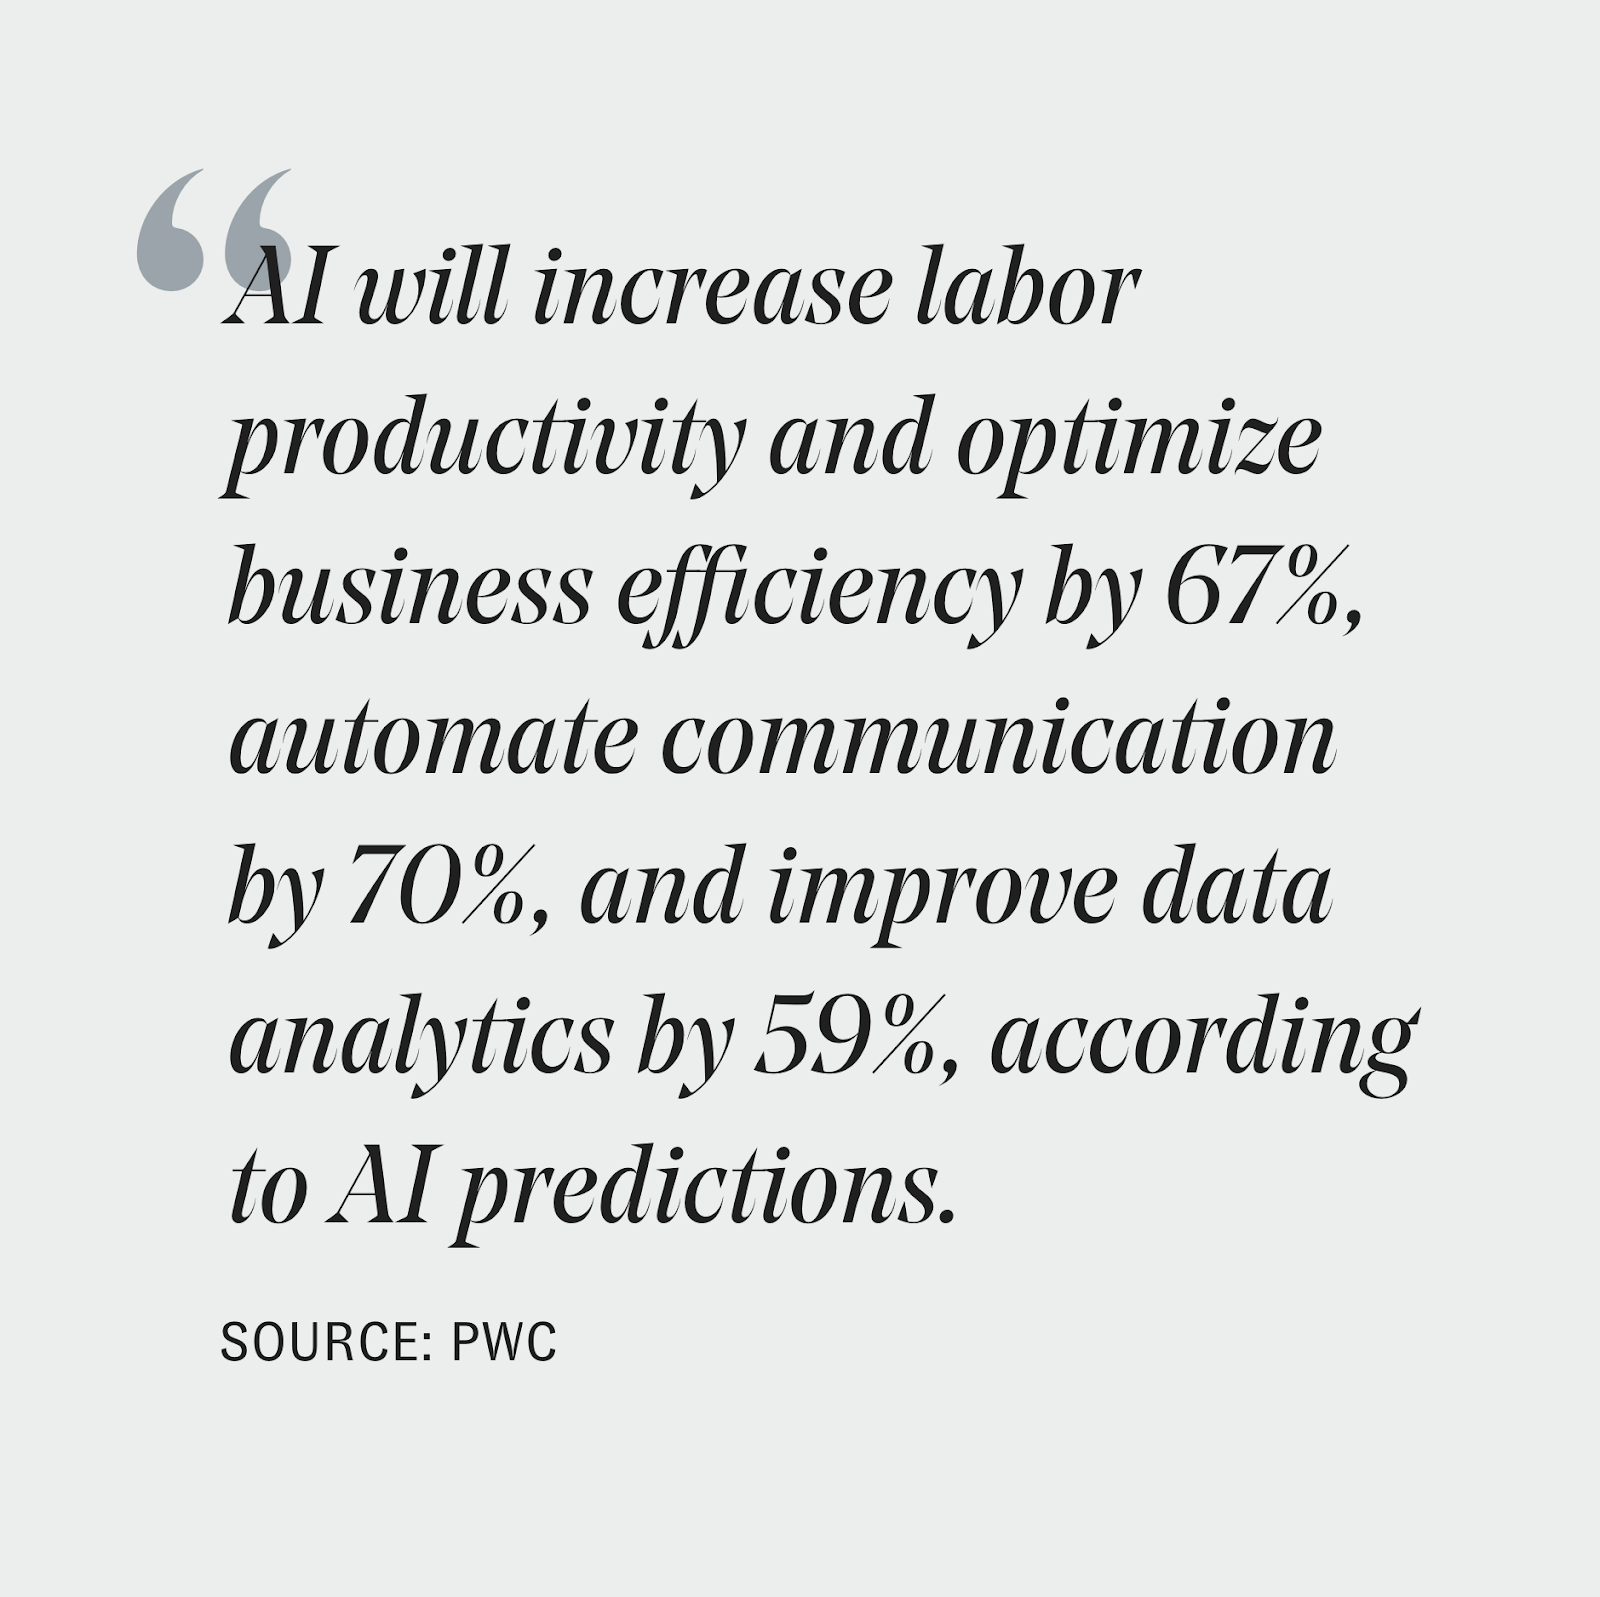 A quote by PWC is written in black text on a greyish green background. The quote reads: AI will increase labor productivity and optimize business efficiency by 67%, automate communication by 70%, and improve data analytics by 59%, according to AI predictions.